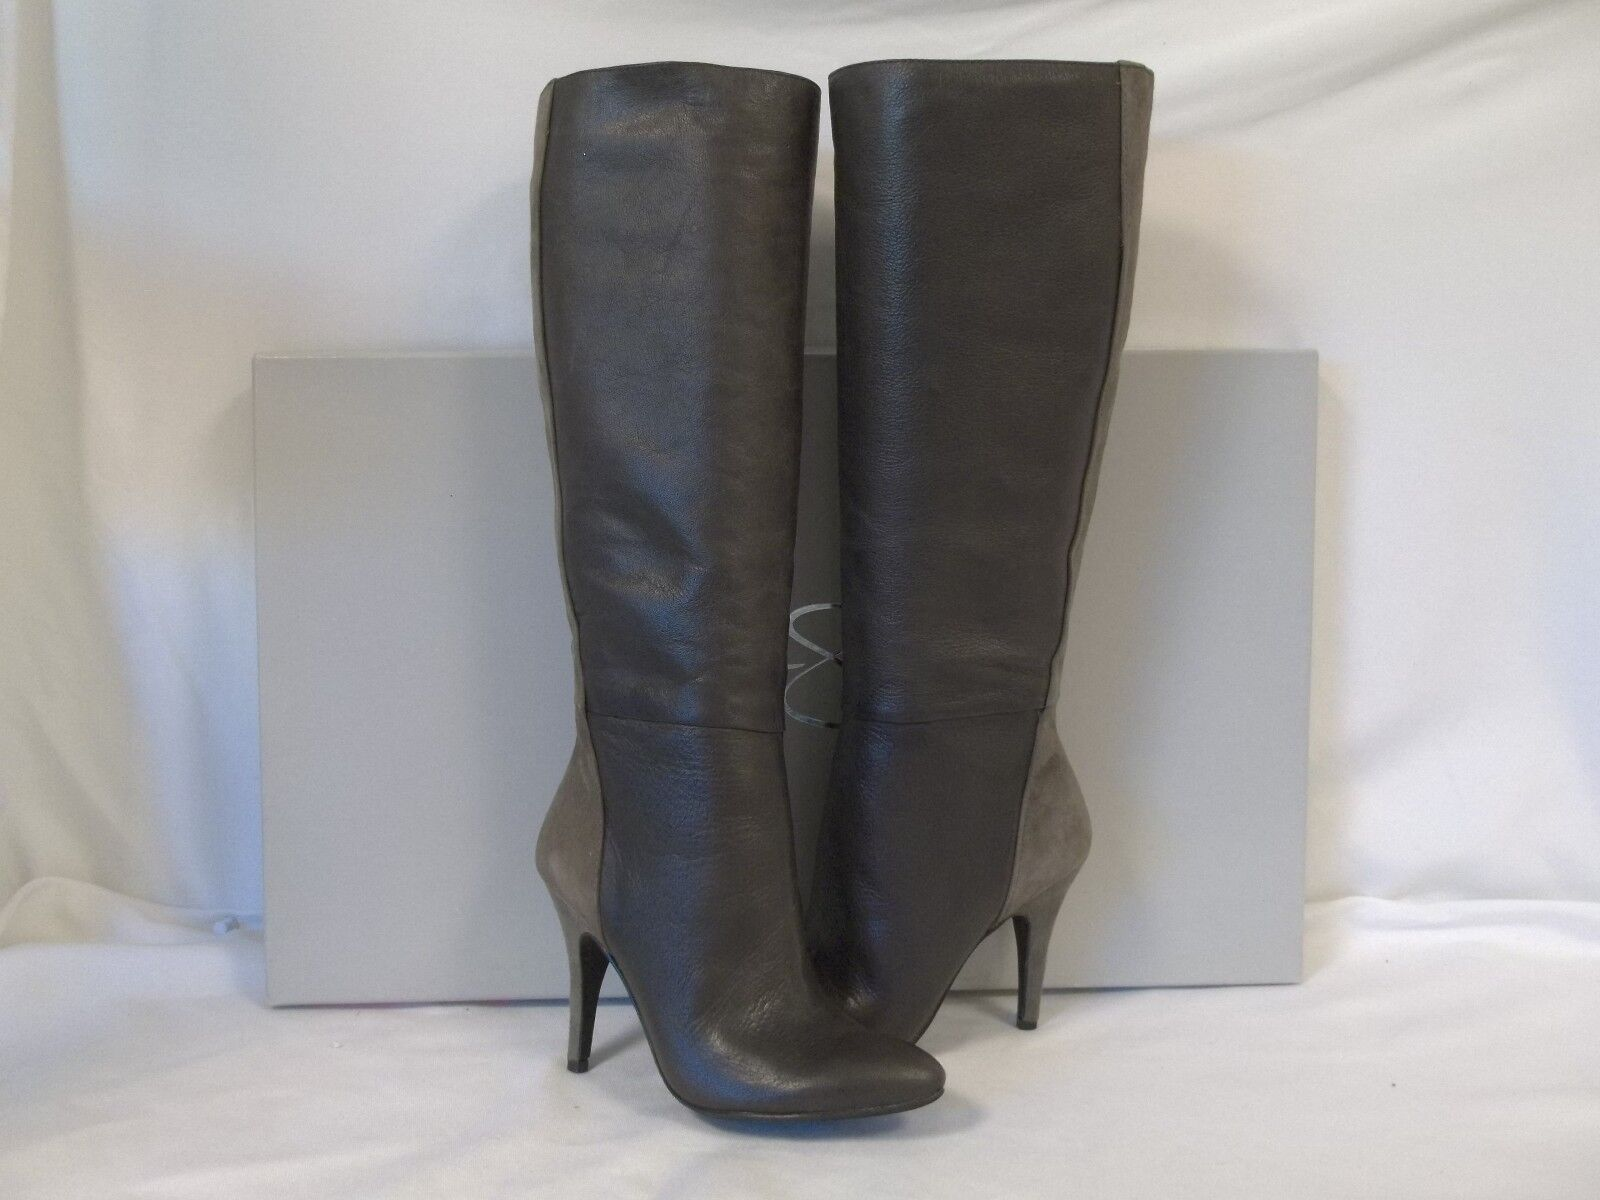 Jessica Simpson 5.5 M Naveens Stiefel Taupe Leder Knee High Stiefel Naveens New Damenschuhe Schuhes 5ee664